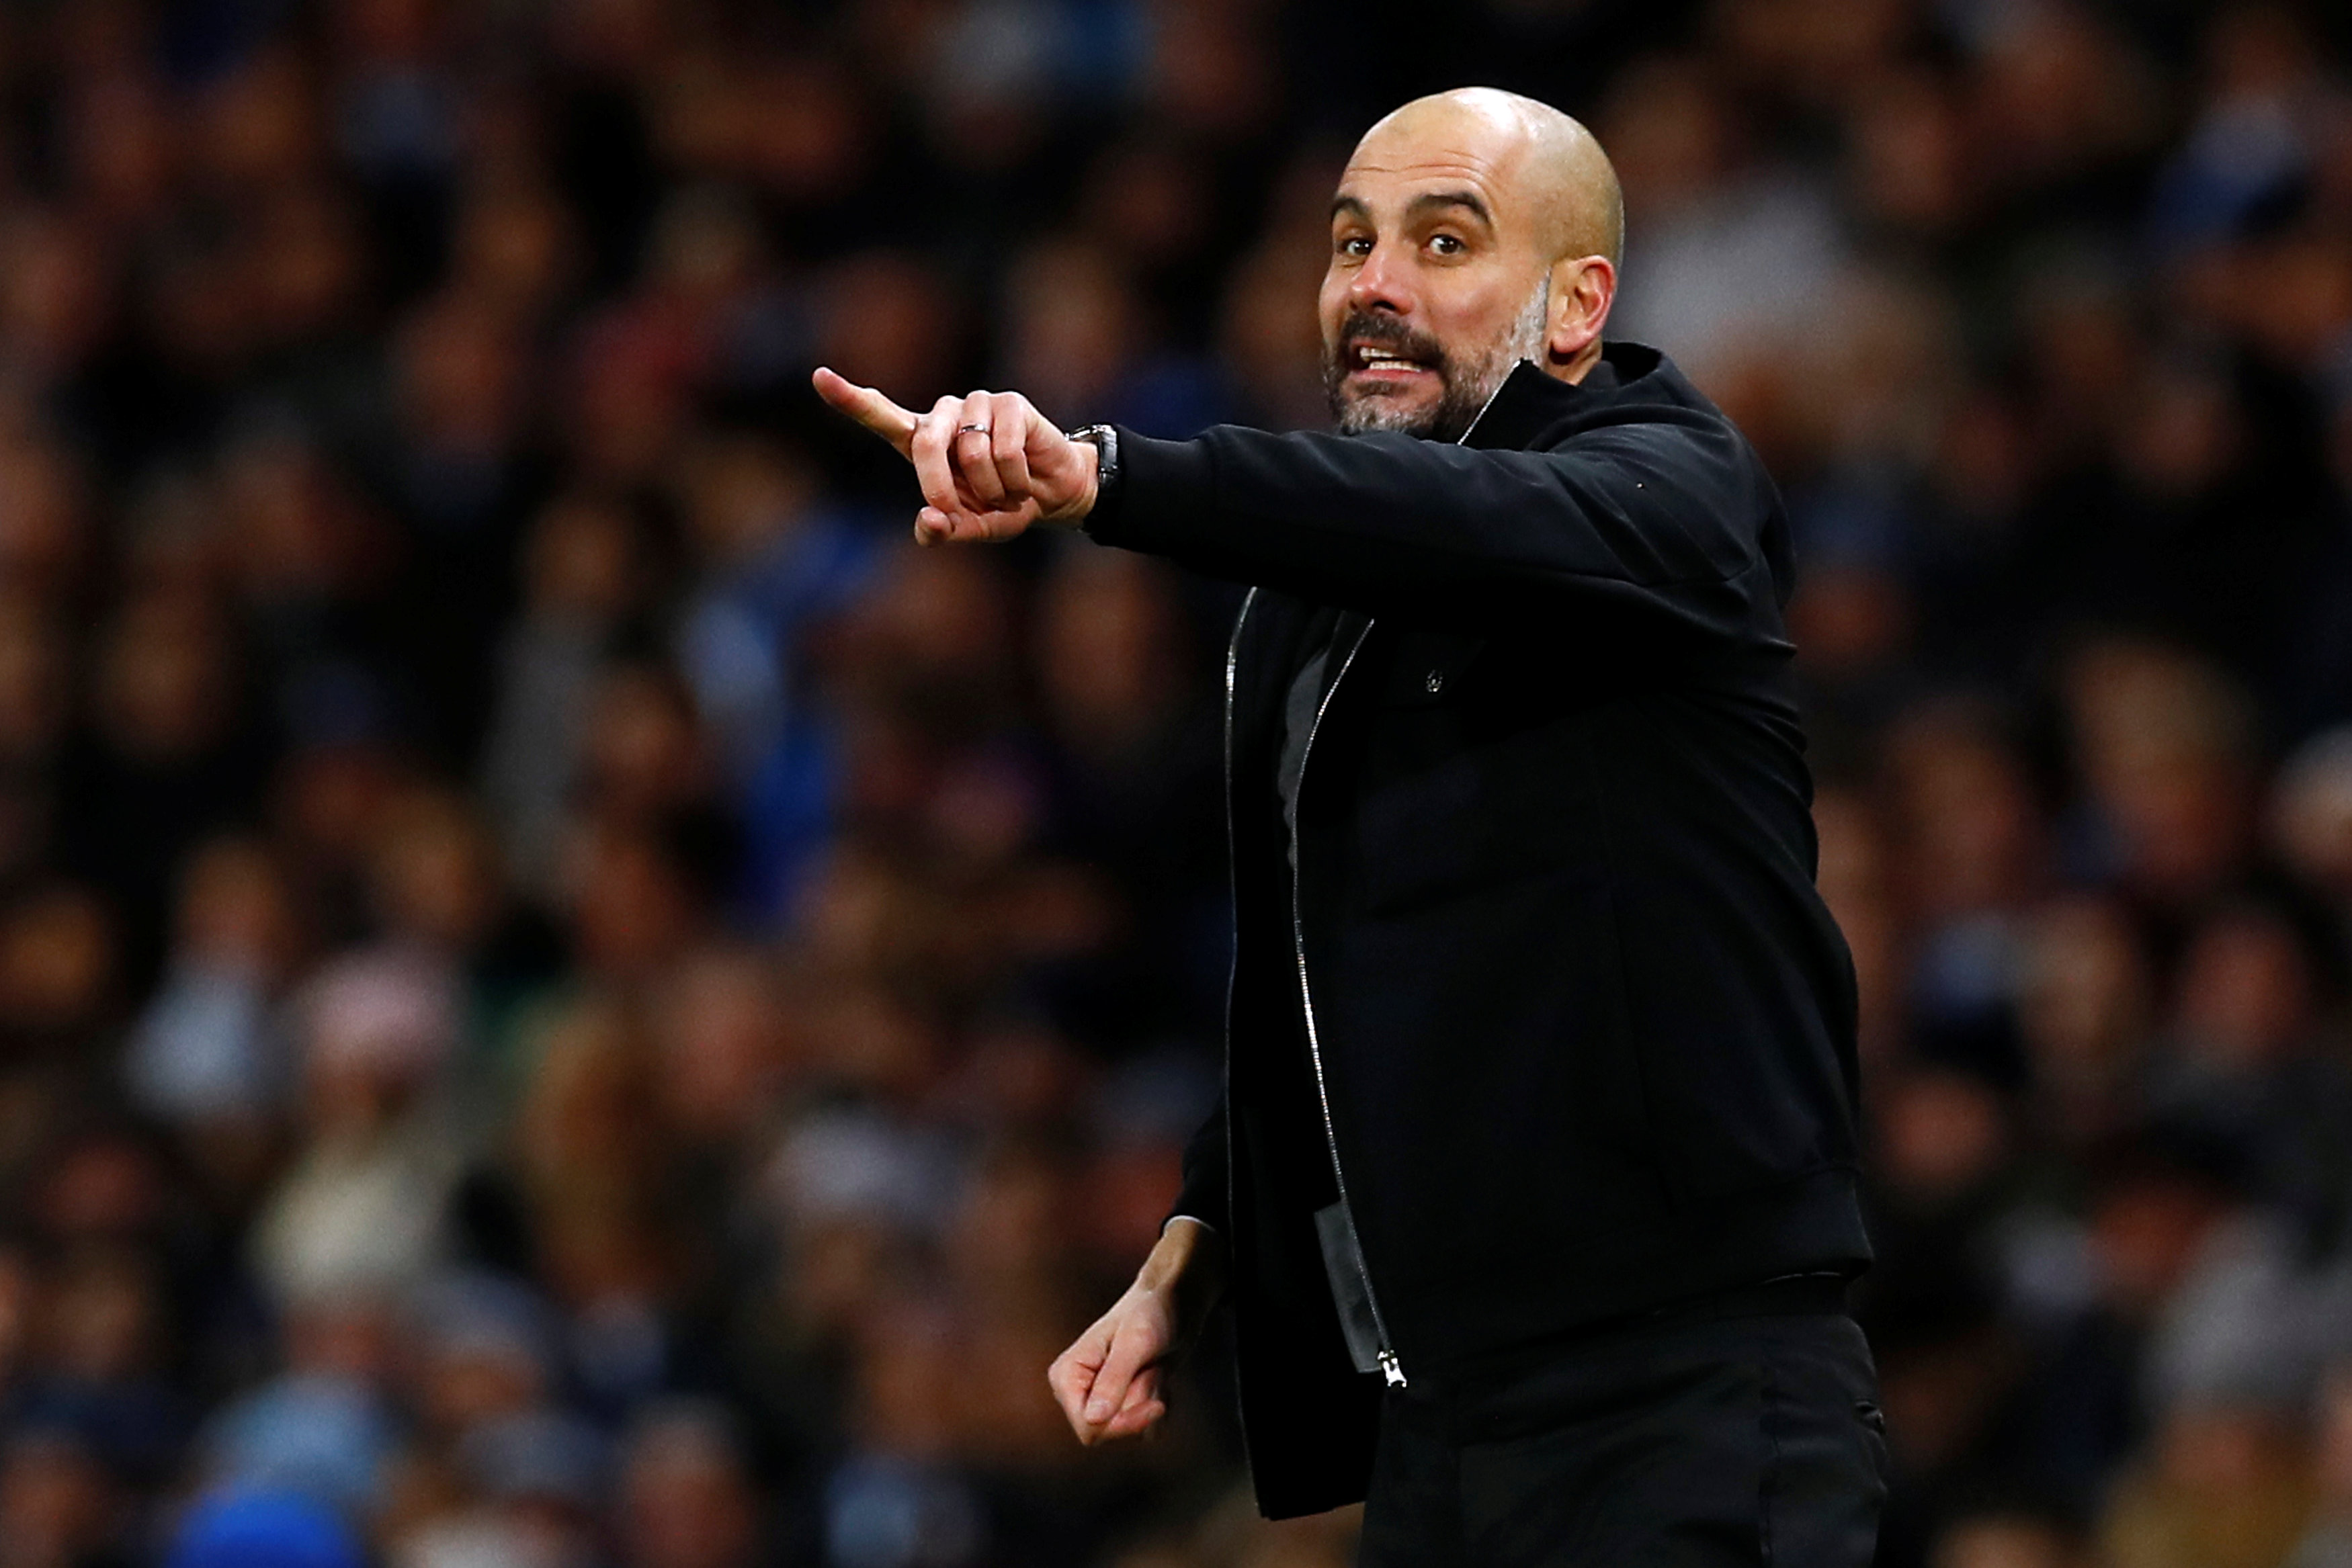 I won't concede title if in United's position: Guardiola